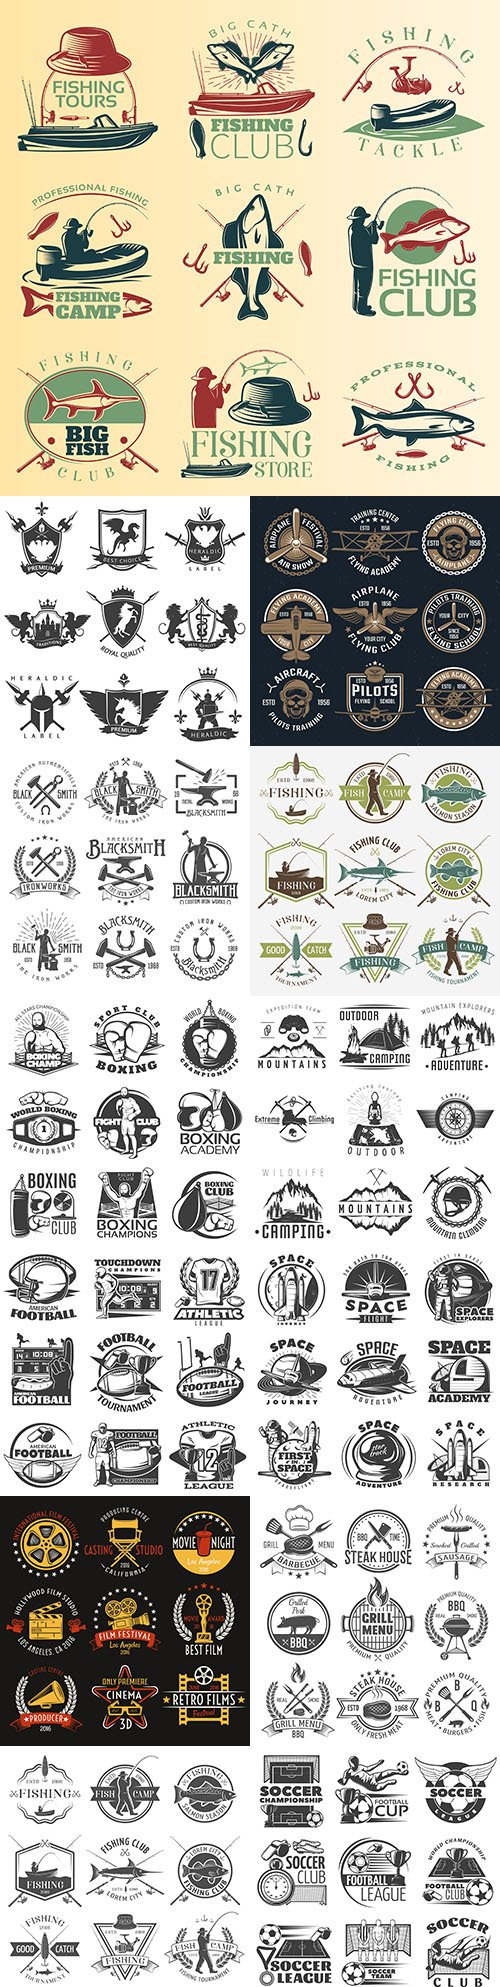 Vintage antique emblems and logos with text design 10